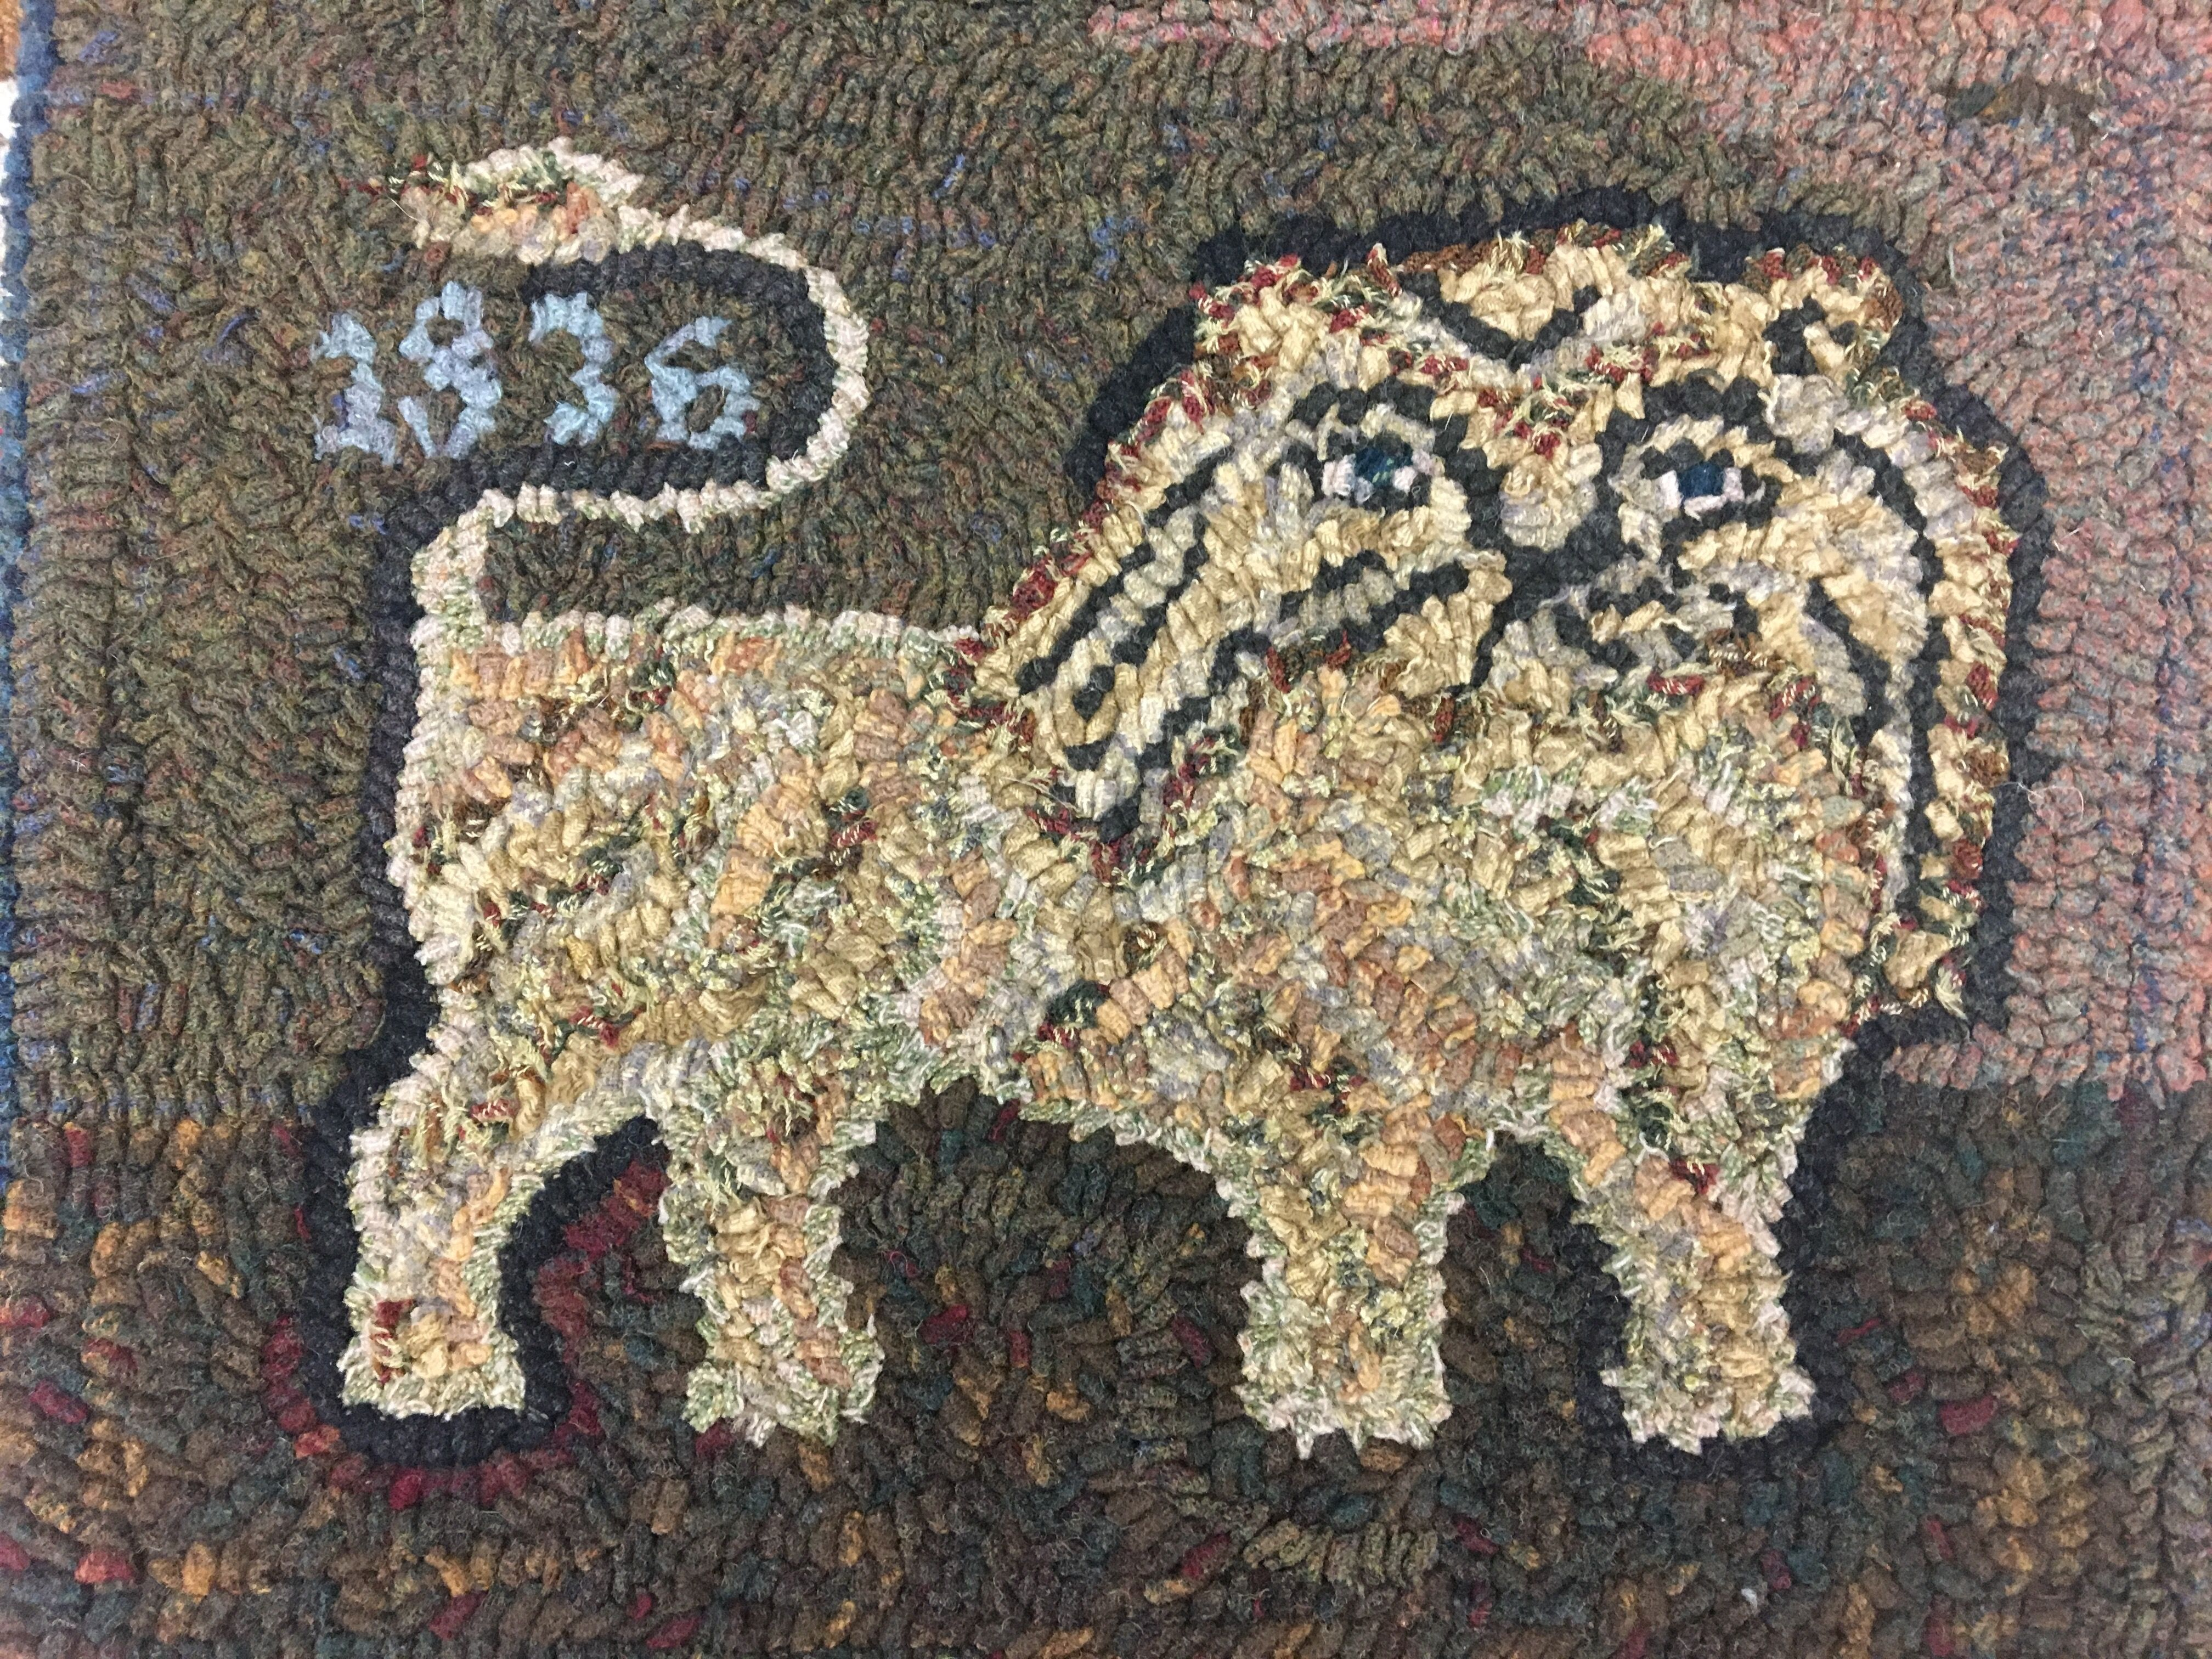 Pin by alice strebel on Hit and miss Rug hooking, Hand